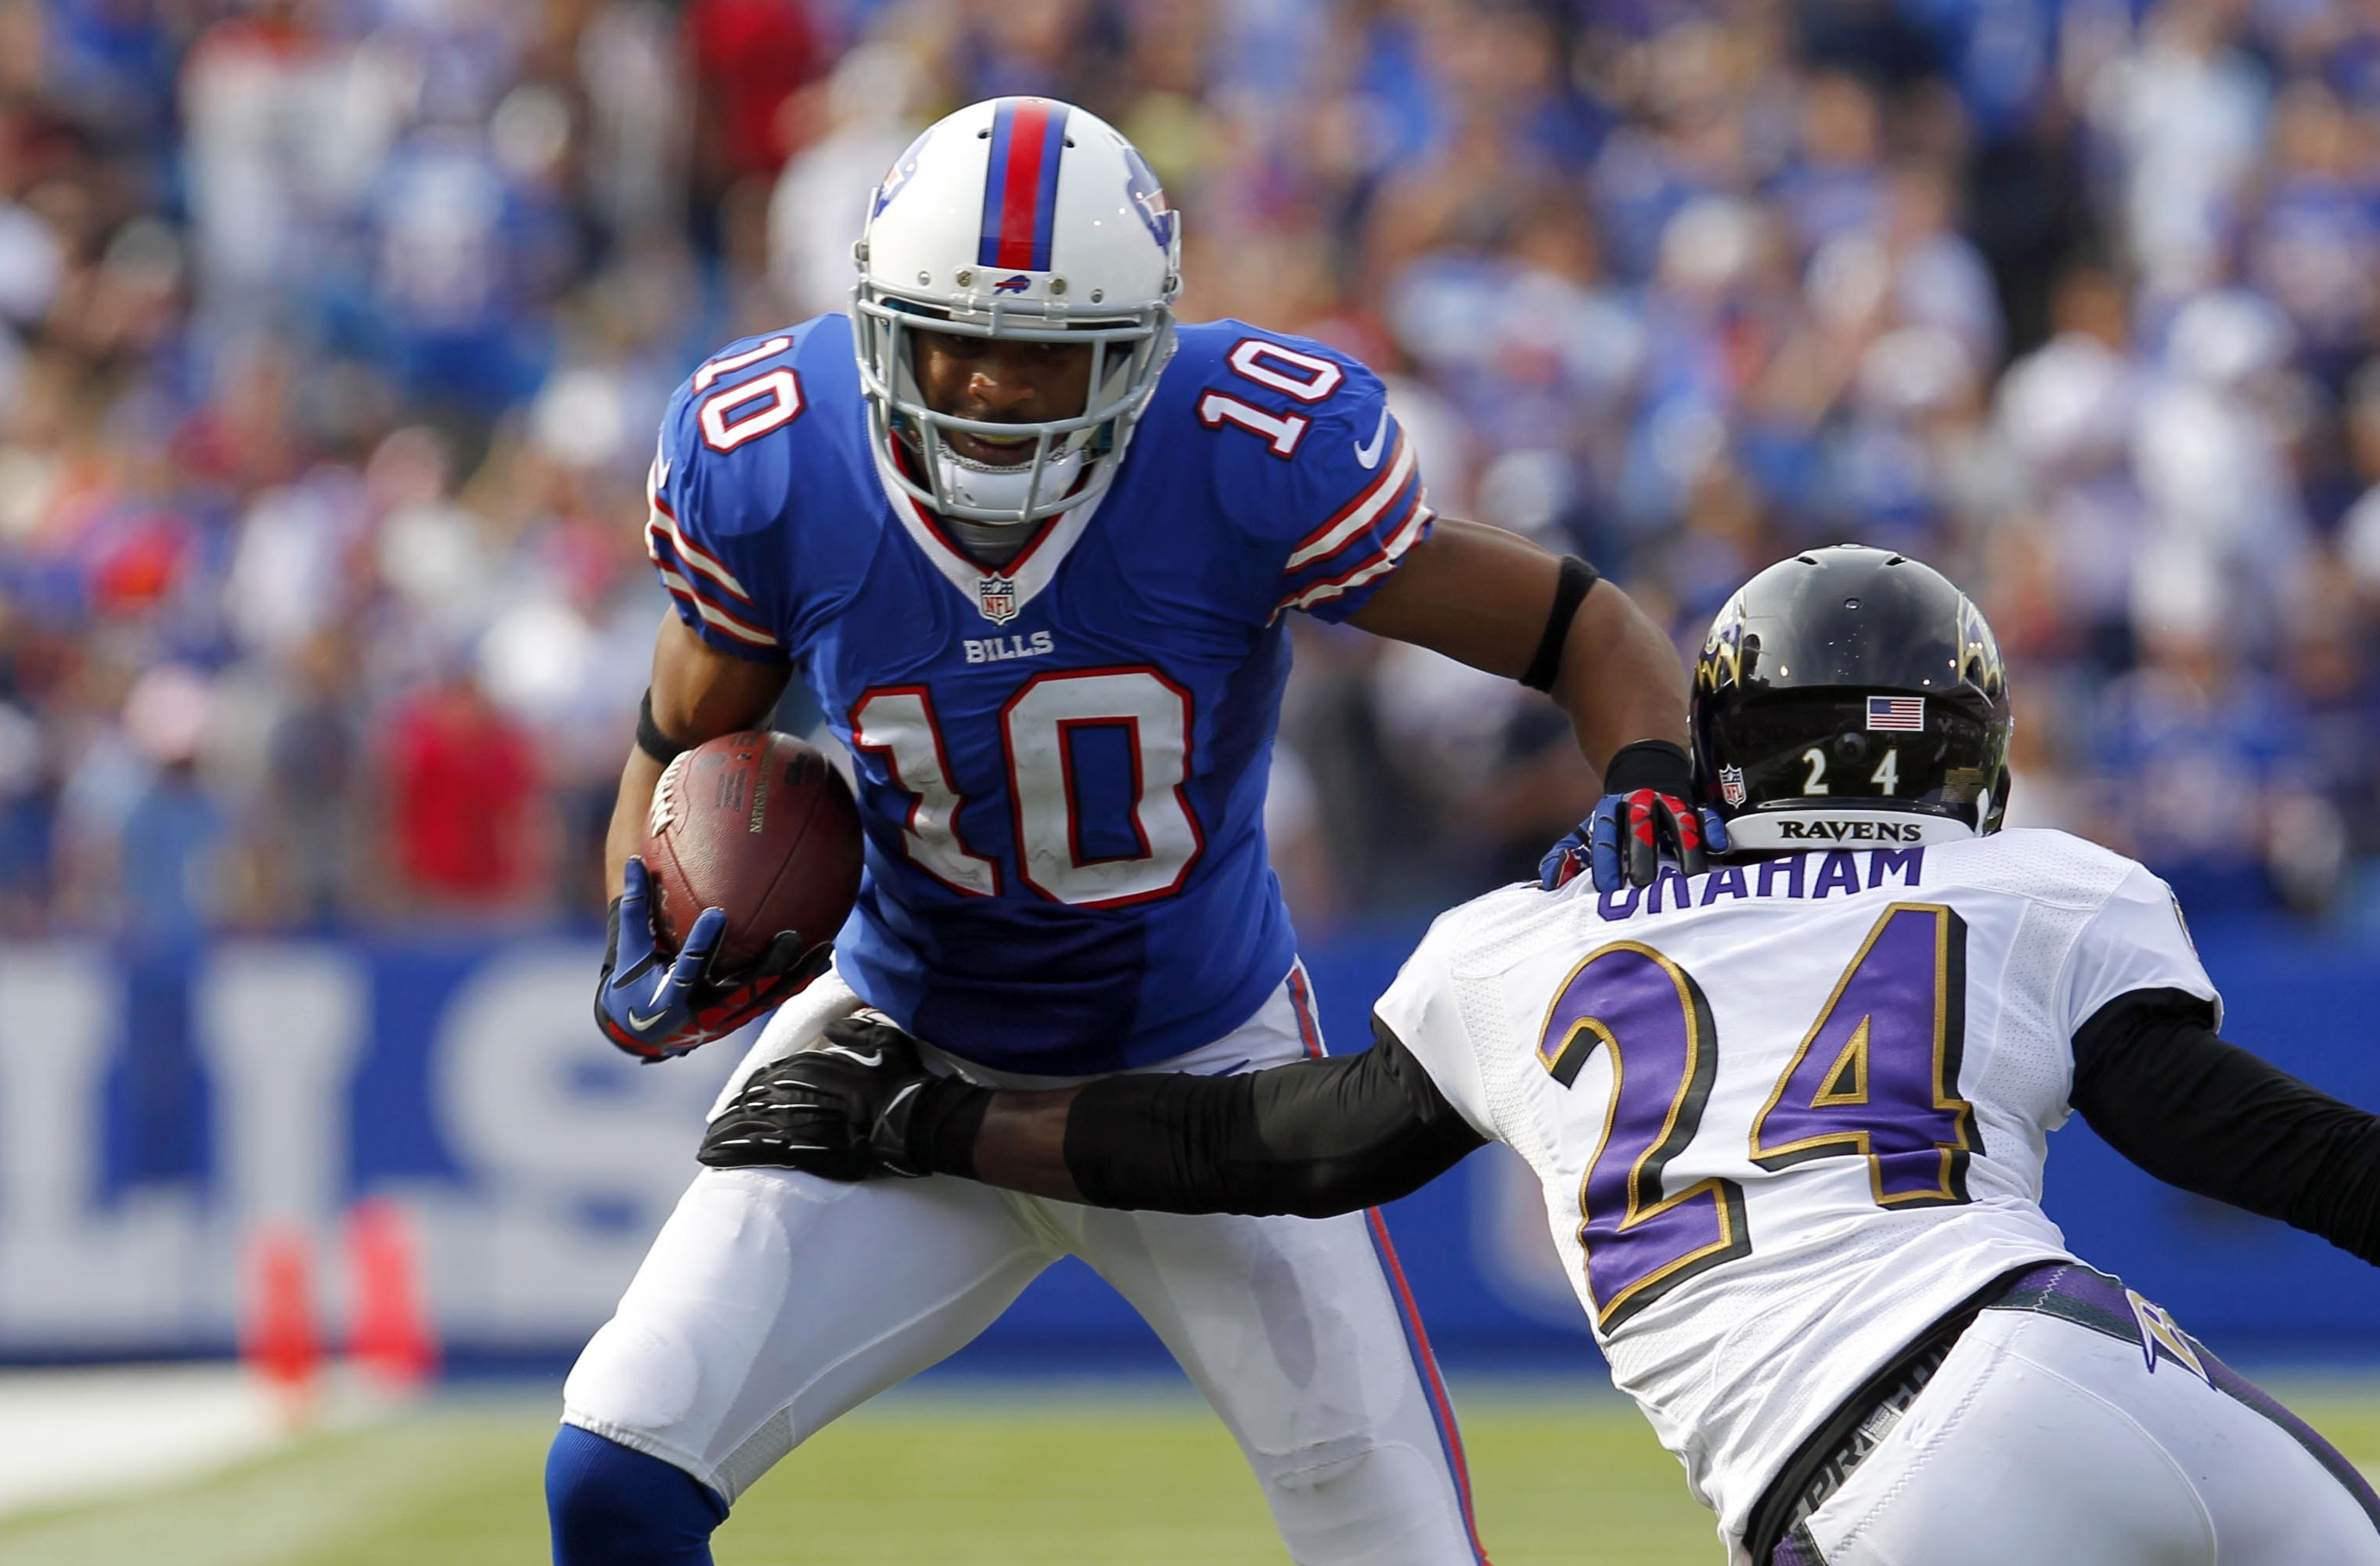 Three potential breakout players for the Bills